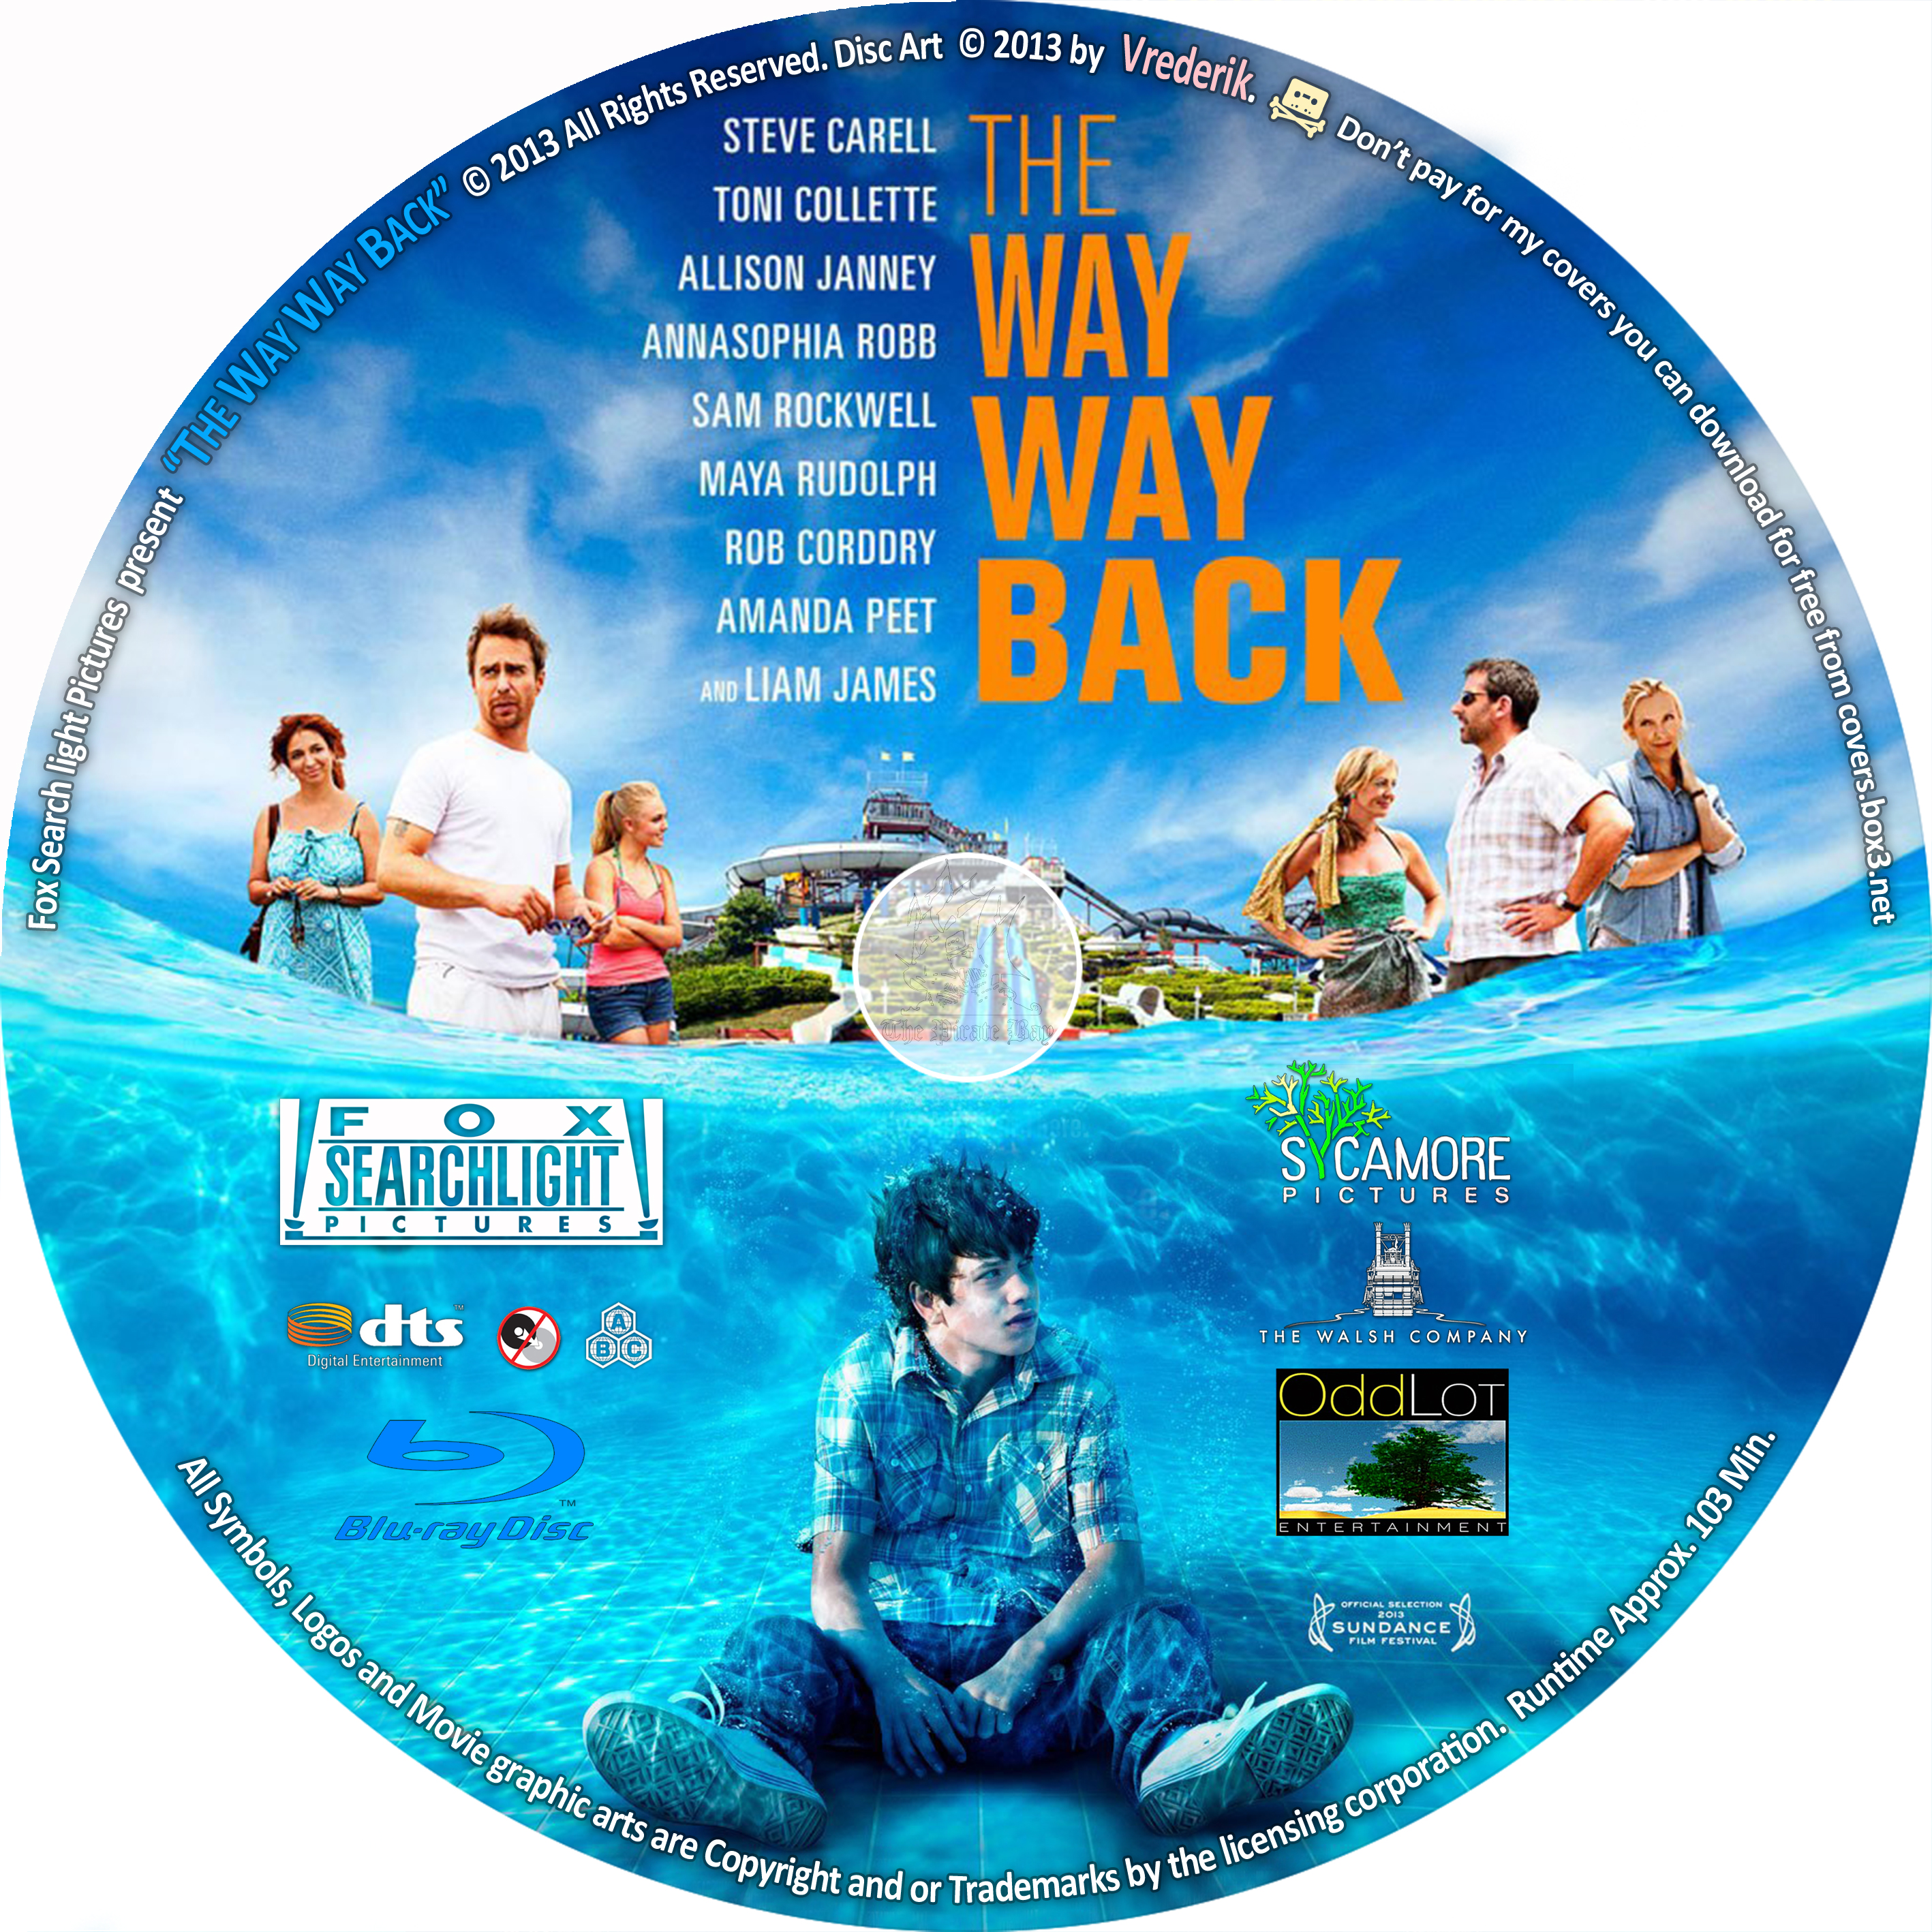 the way way back movie download free